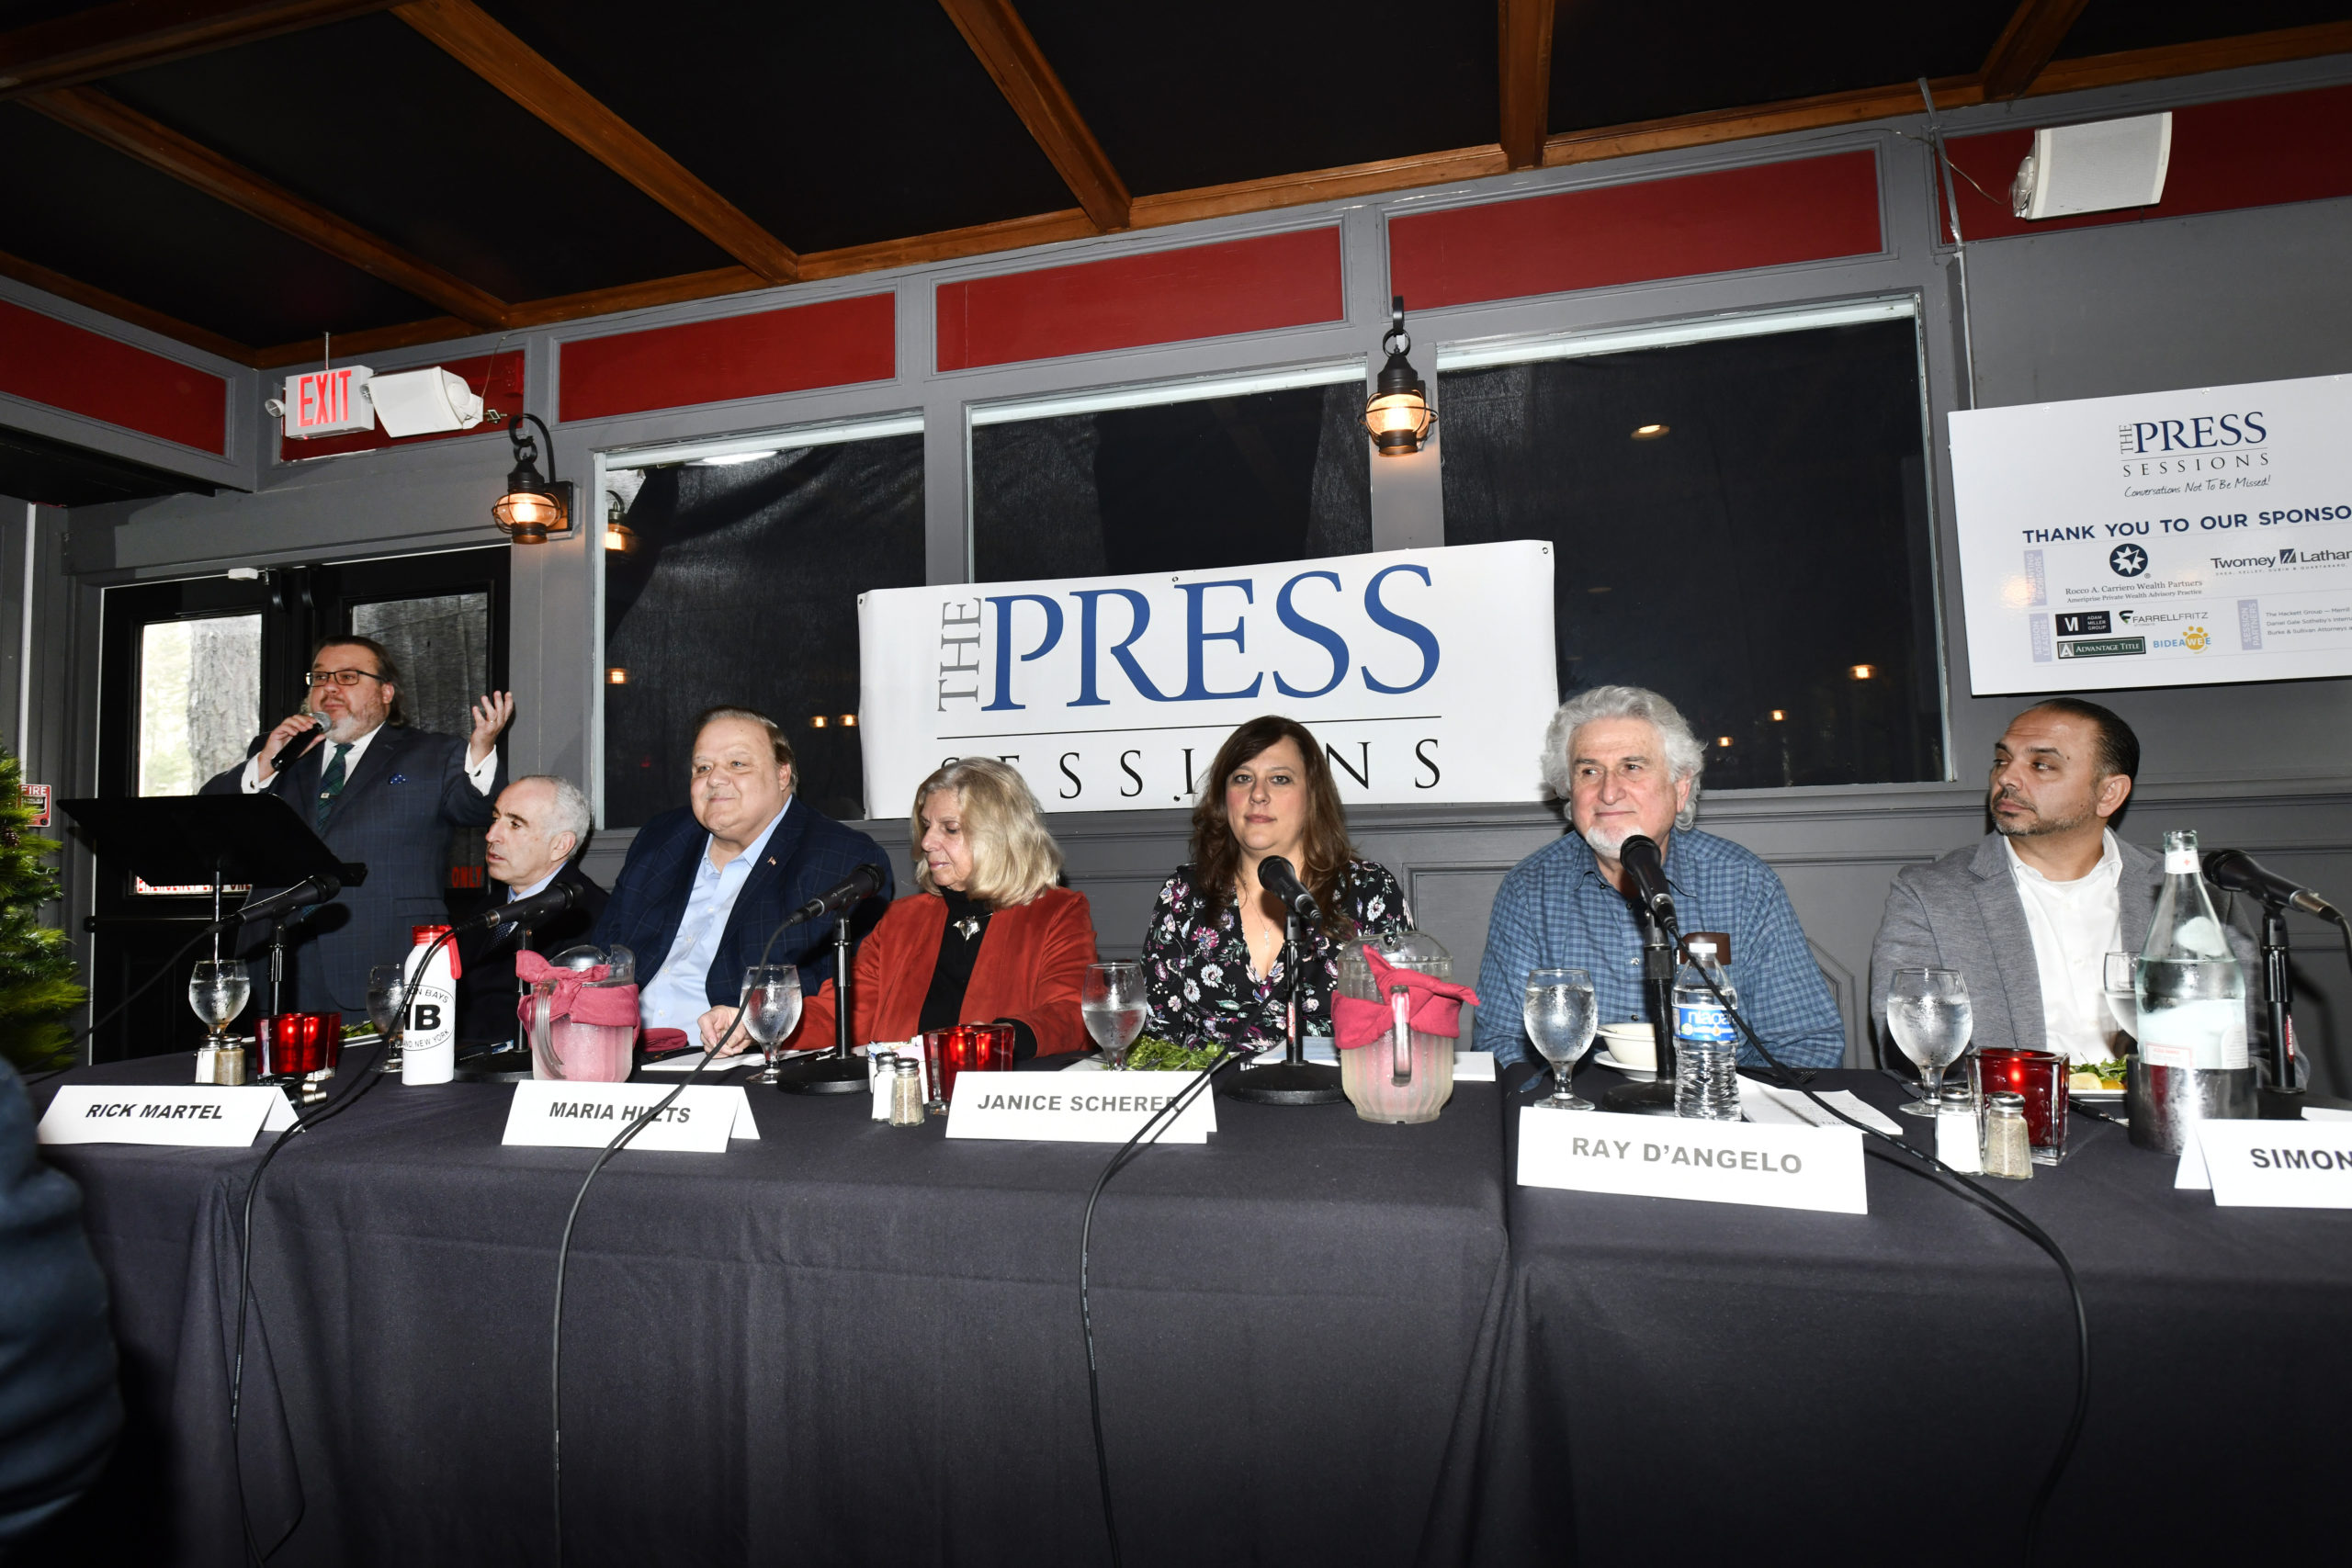 The panel for the Press Session at 1 North Steakhouse in Hampton Bays.  DANA SHAW